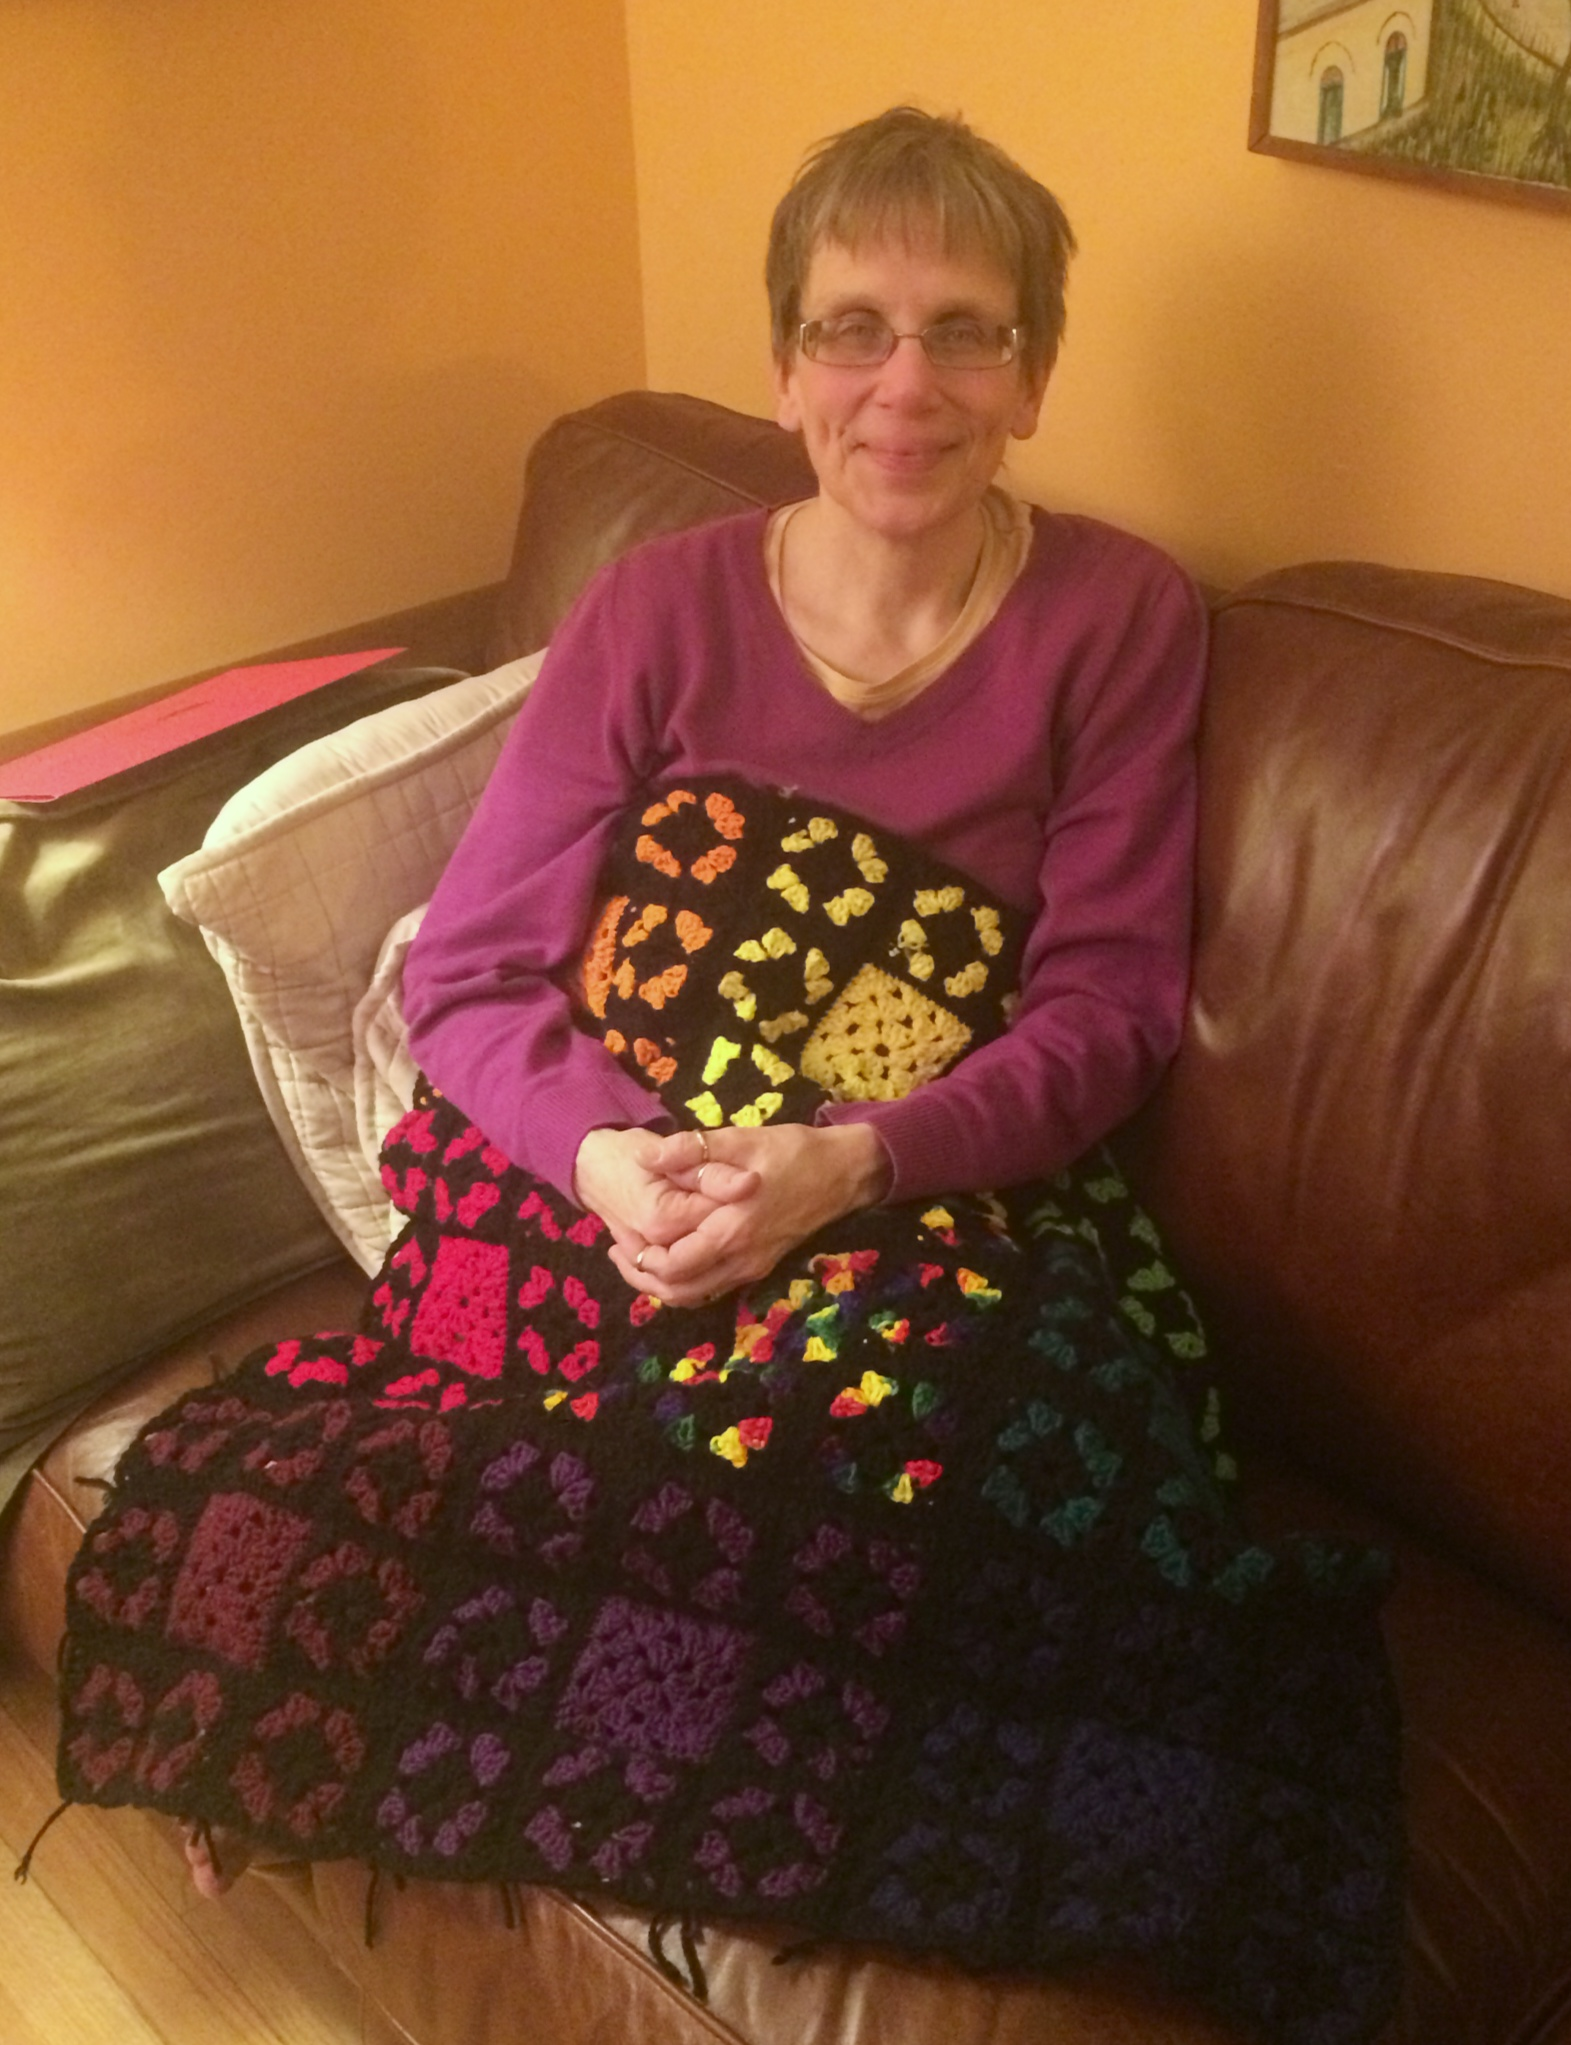 Watch Mom In Bedroom Camera: Grieving Through Granny Squares